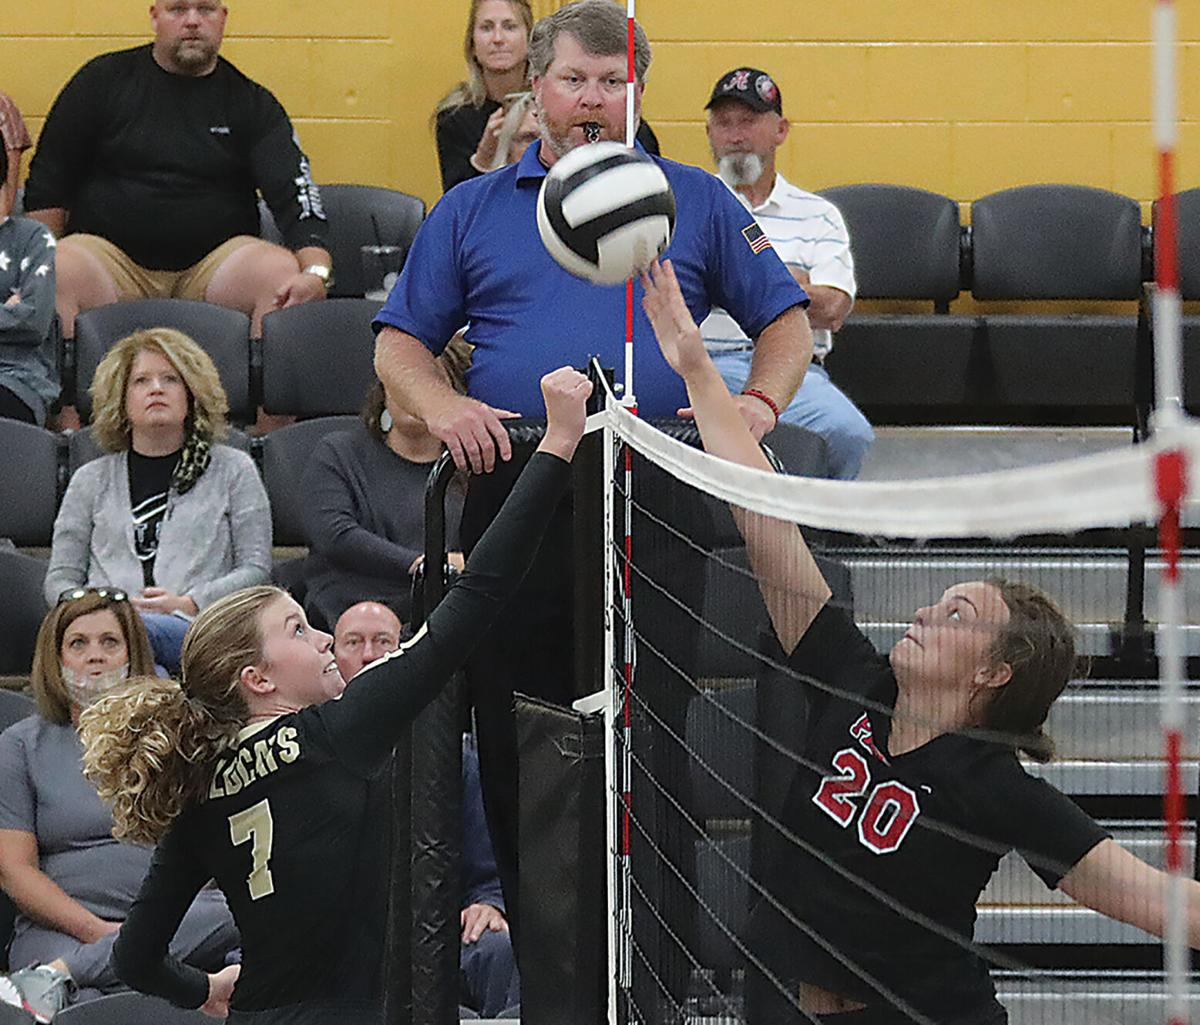 Fort Payne sweeps Pisgah on home court